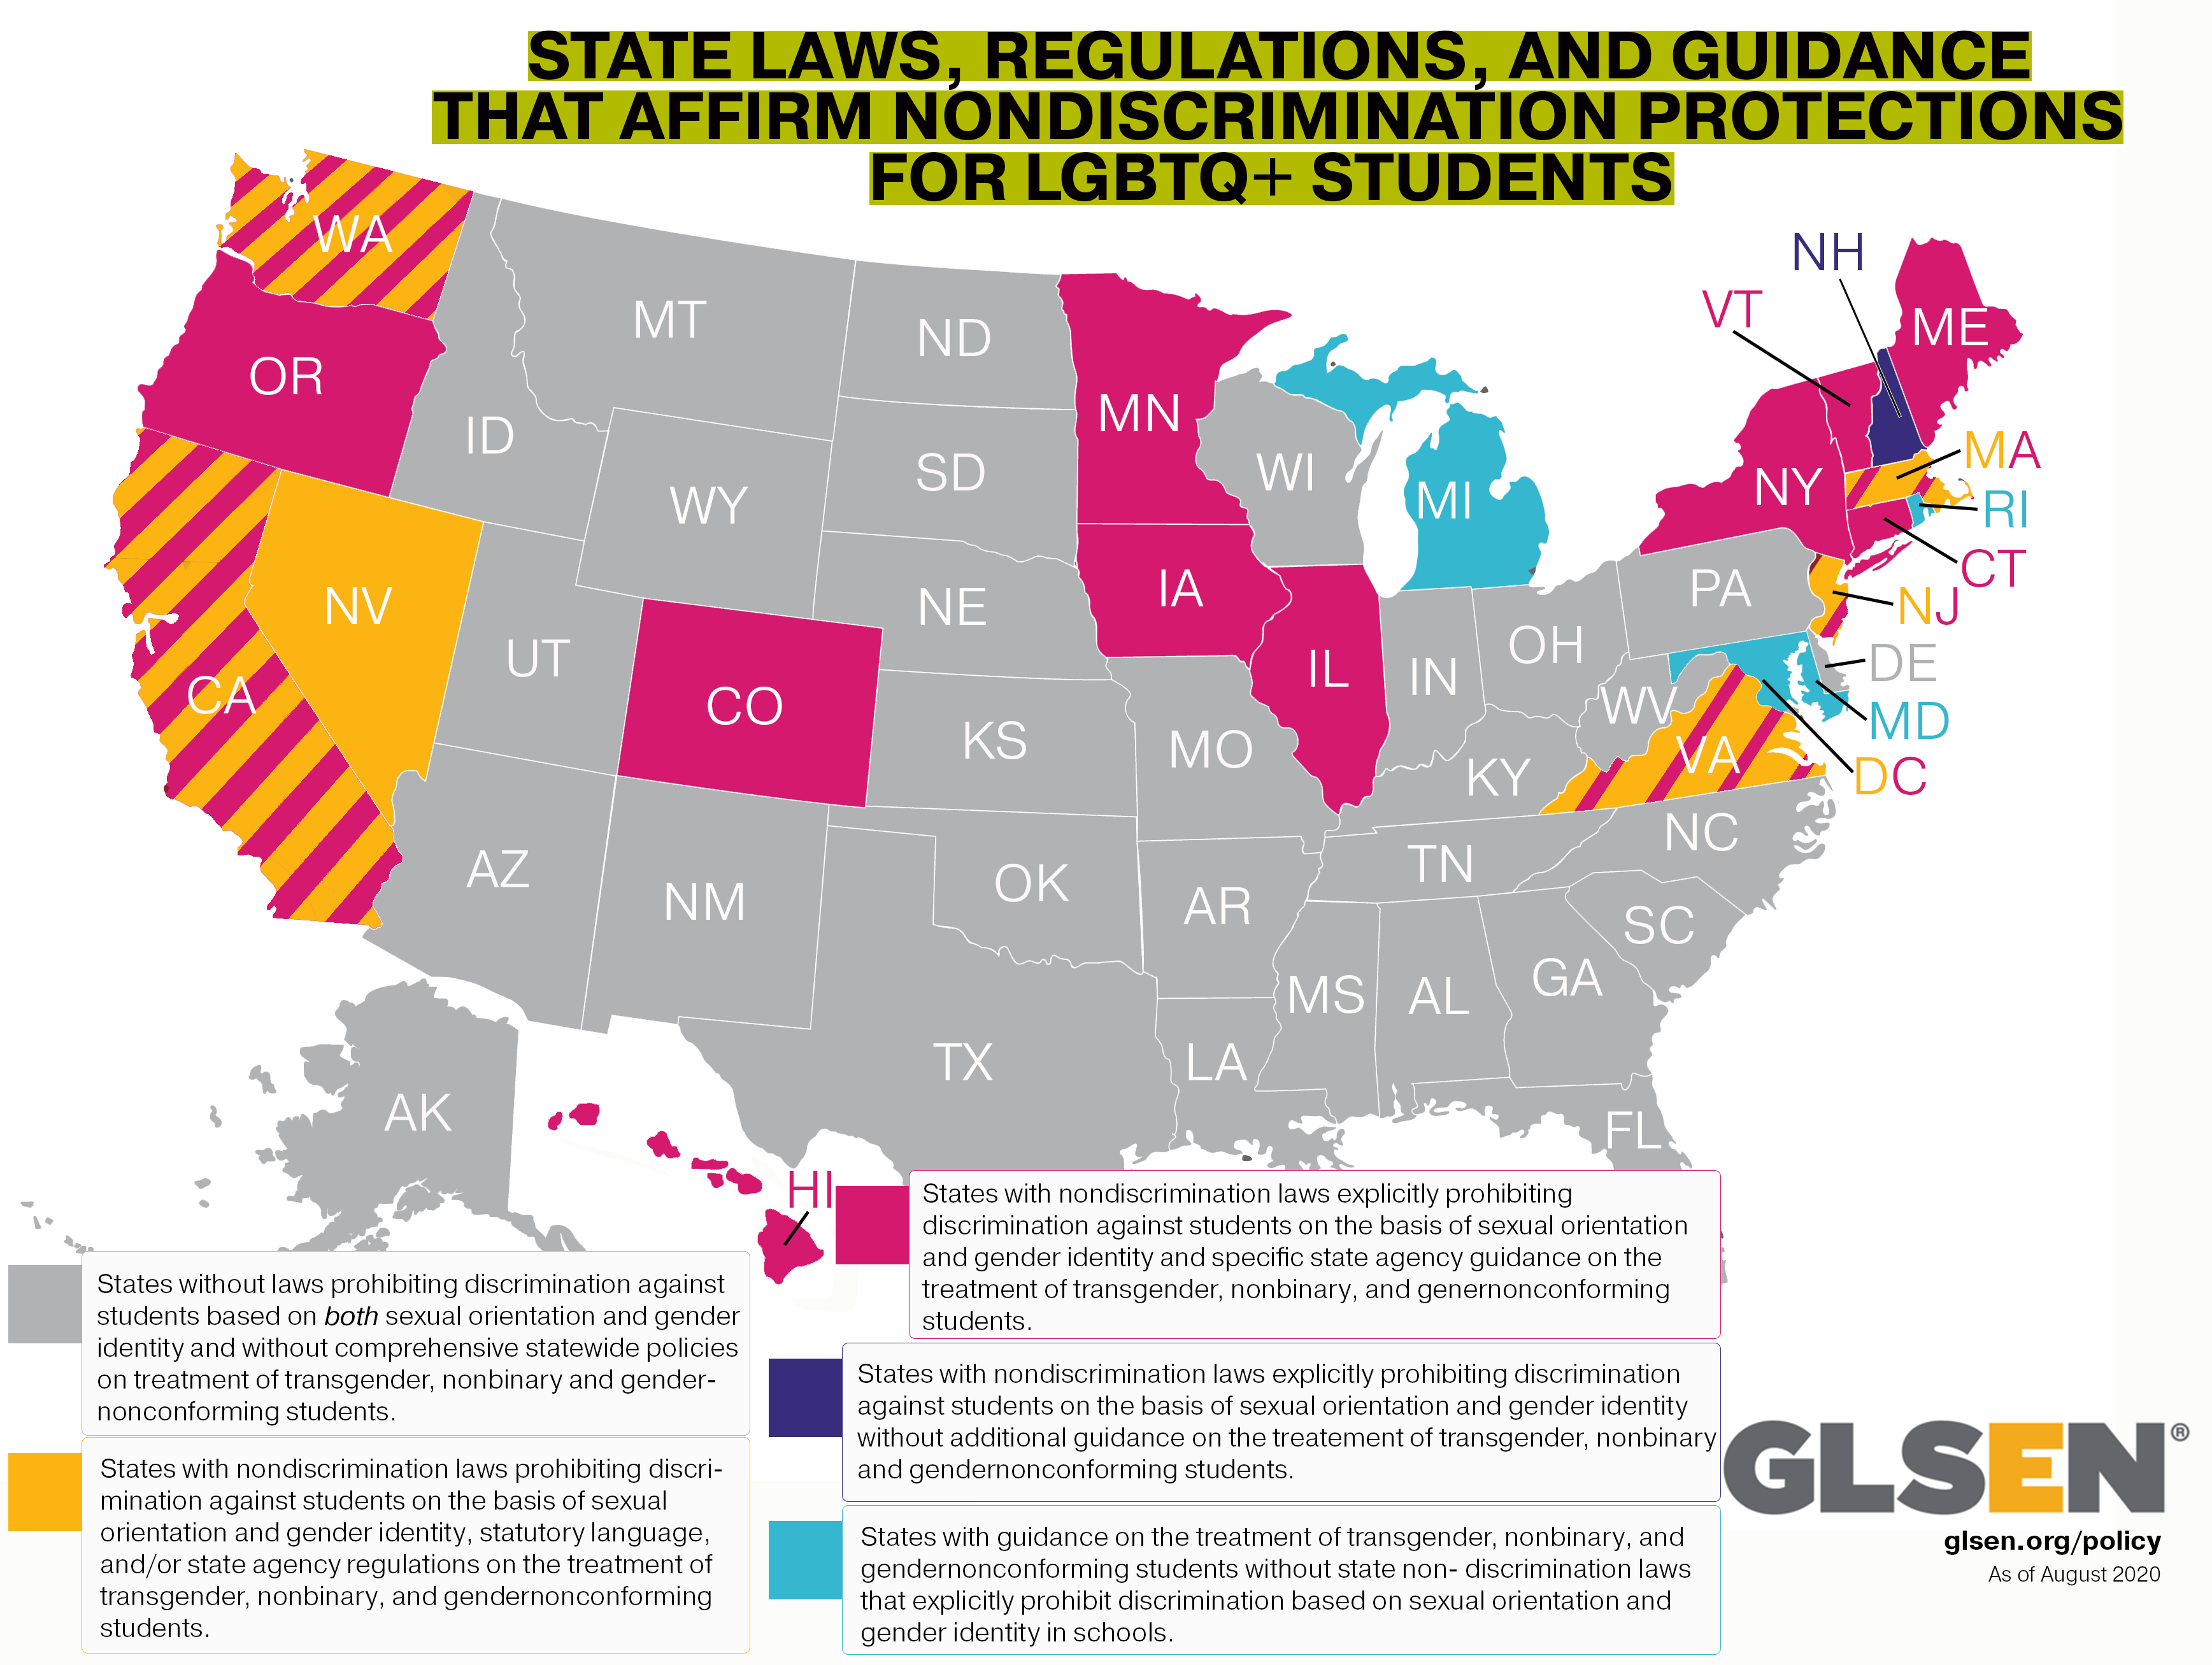 TATE LAWS, REGULATIONS, AND GUIDANCE THAT AFFIRM NONDISCRIMINATION PROTECTIONS FOR LGBTQ+ STUDENTS